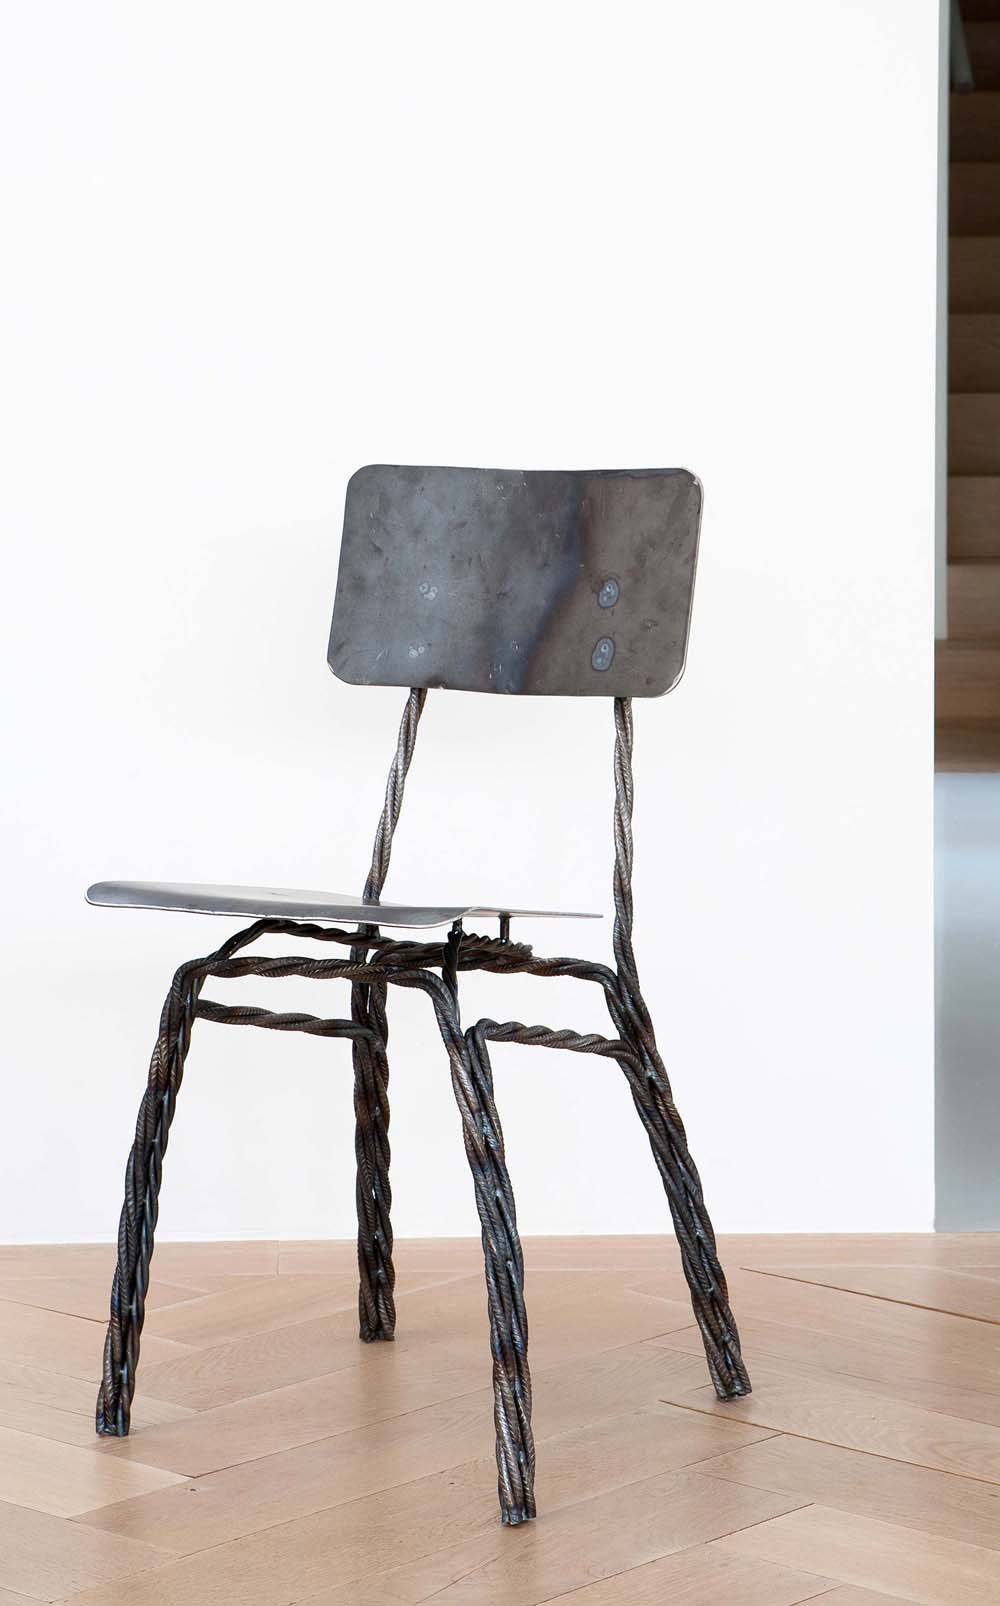 Twisted Chair by Ward Wijnant